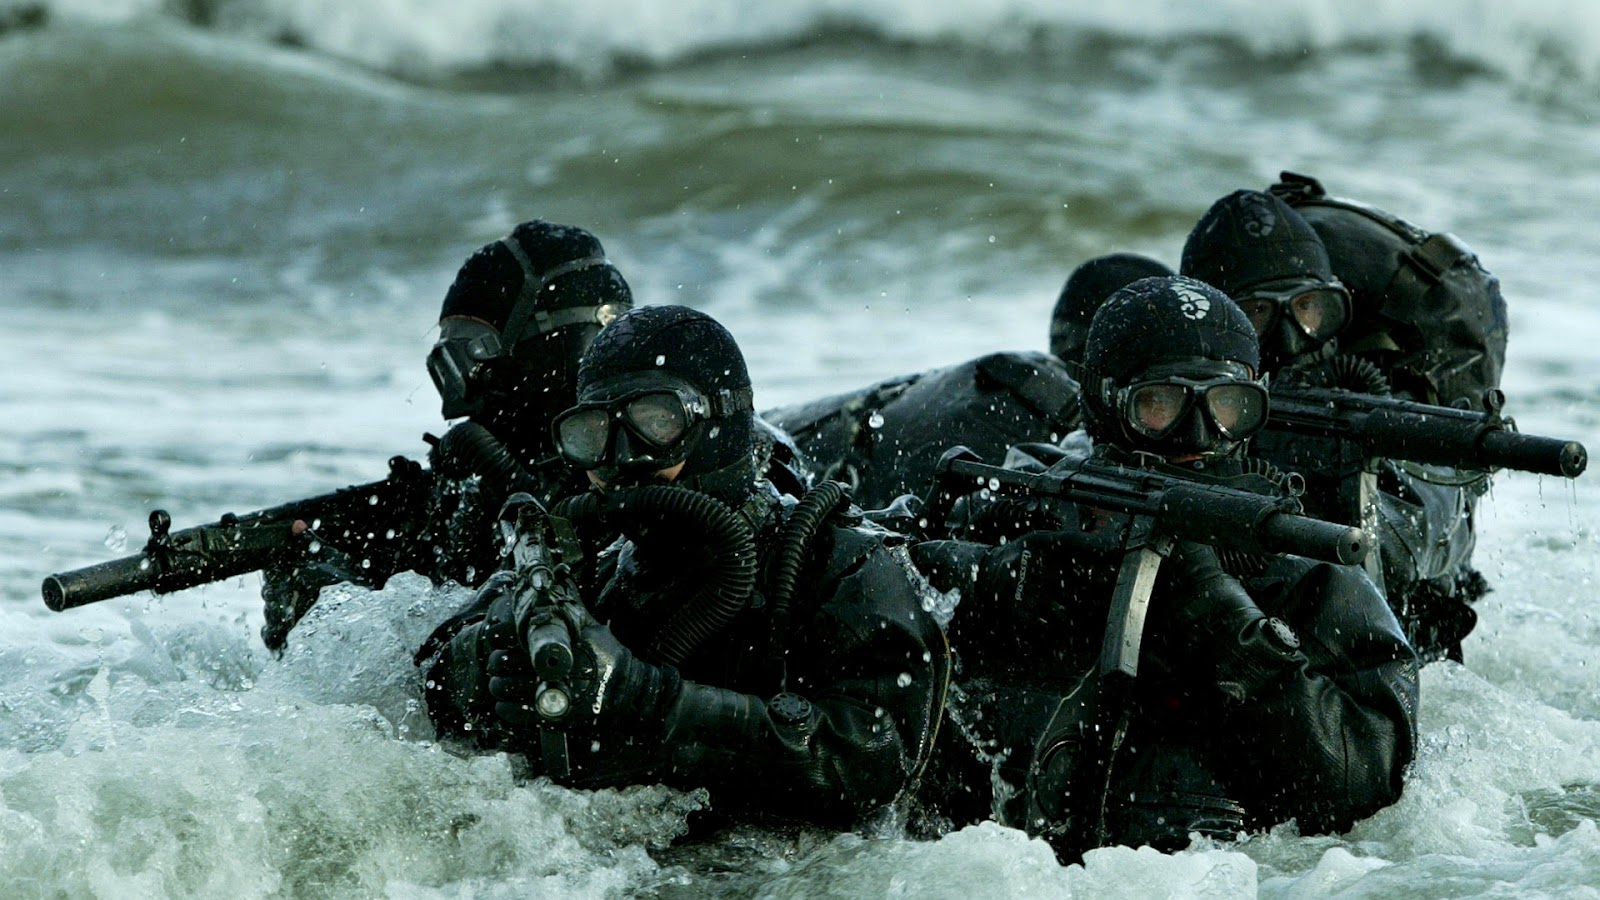 Wallpaper met Special Forces in een rivier